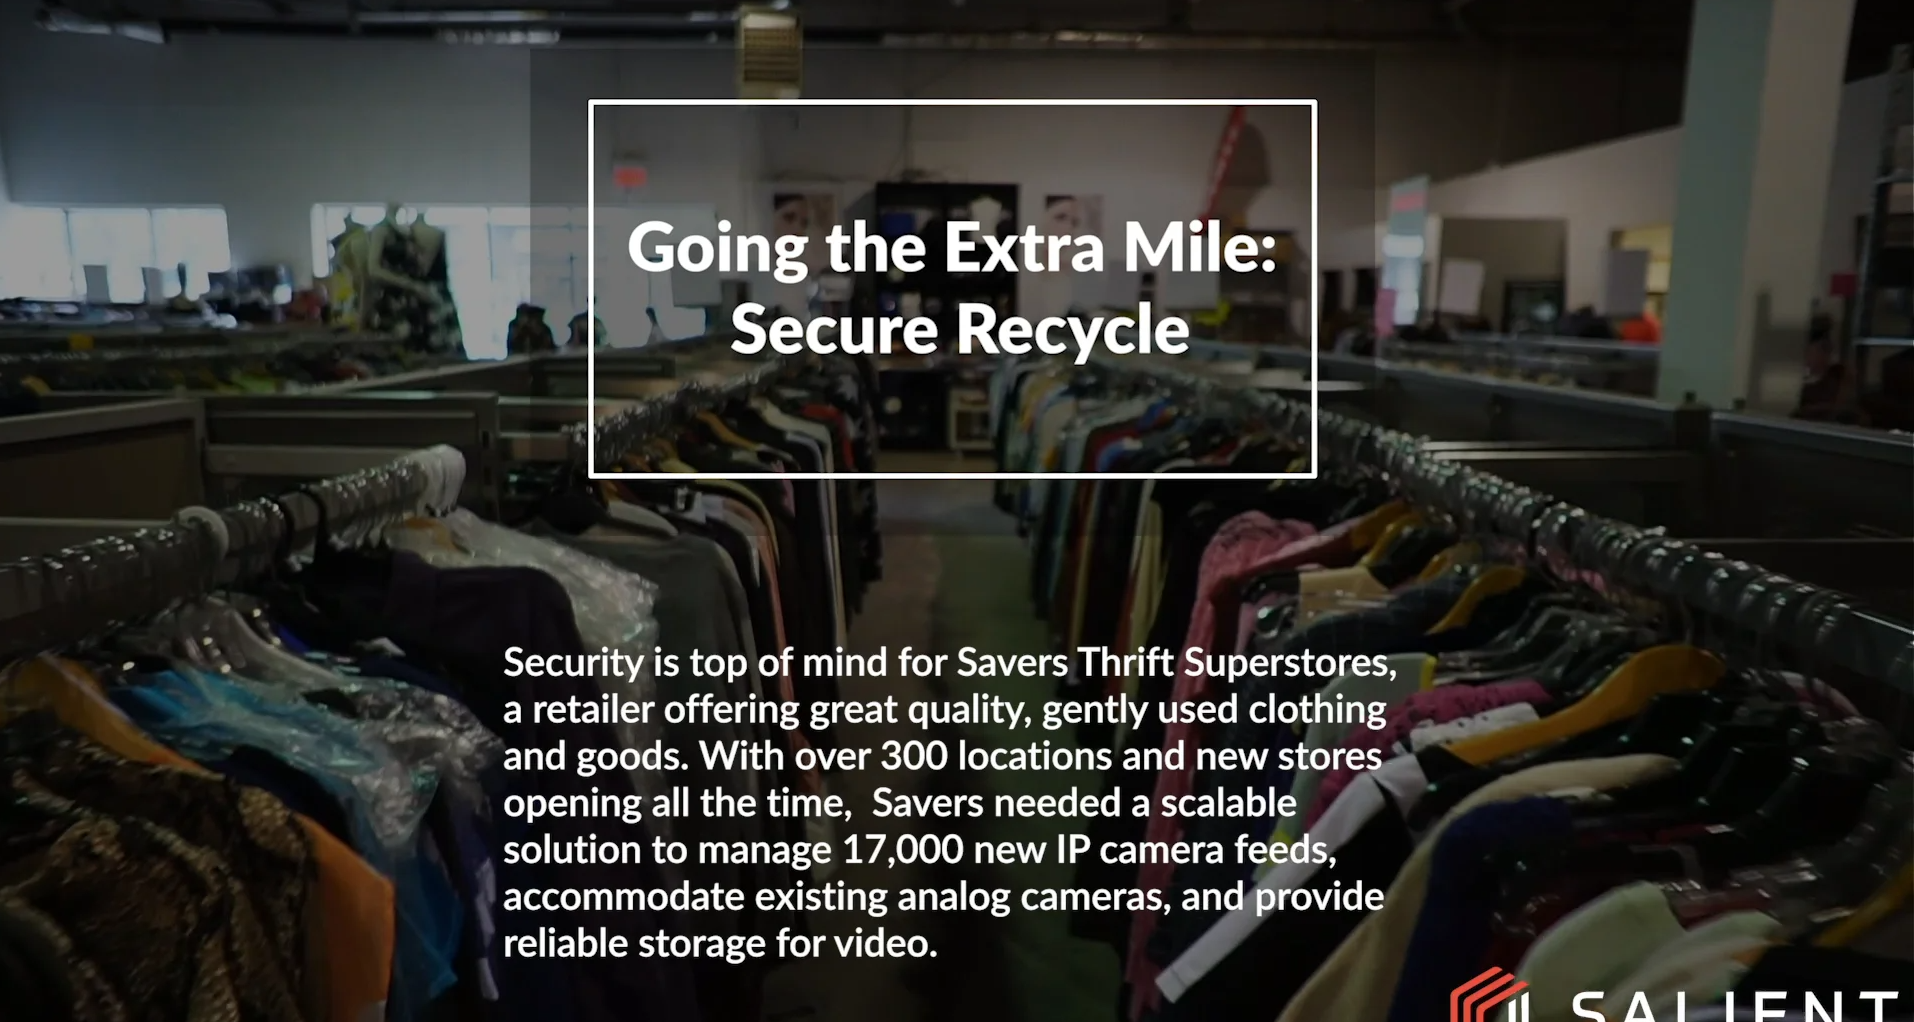 poster image for Going the Extra Mile - Secure Recycle :: Savers Thrift Superstores video